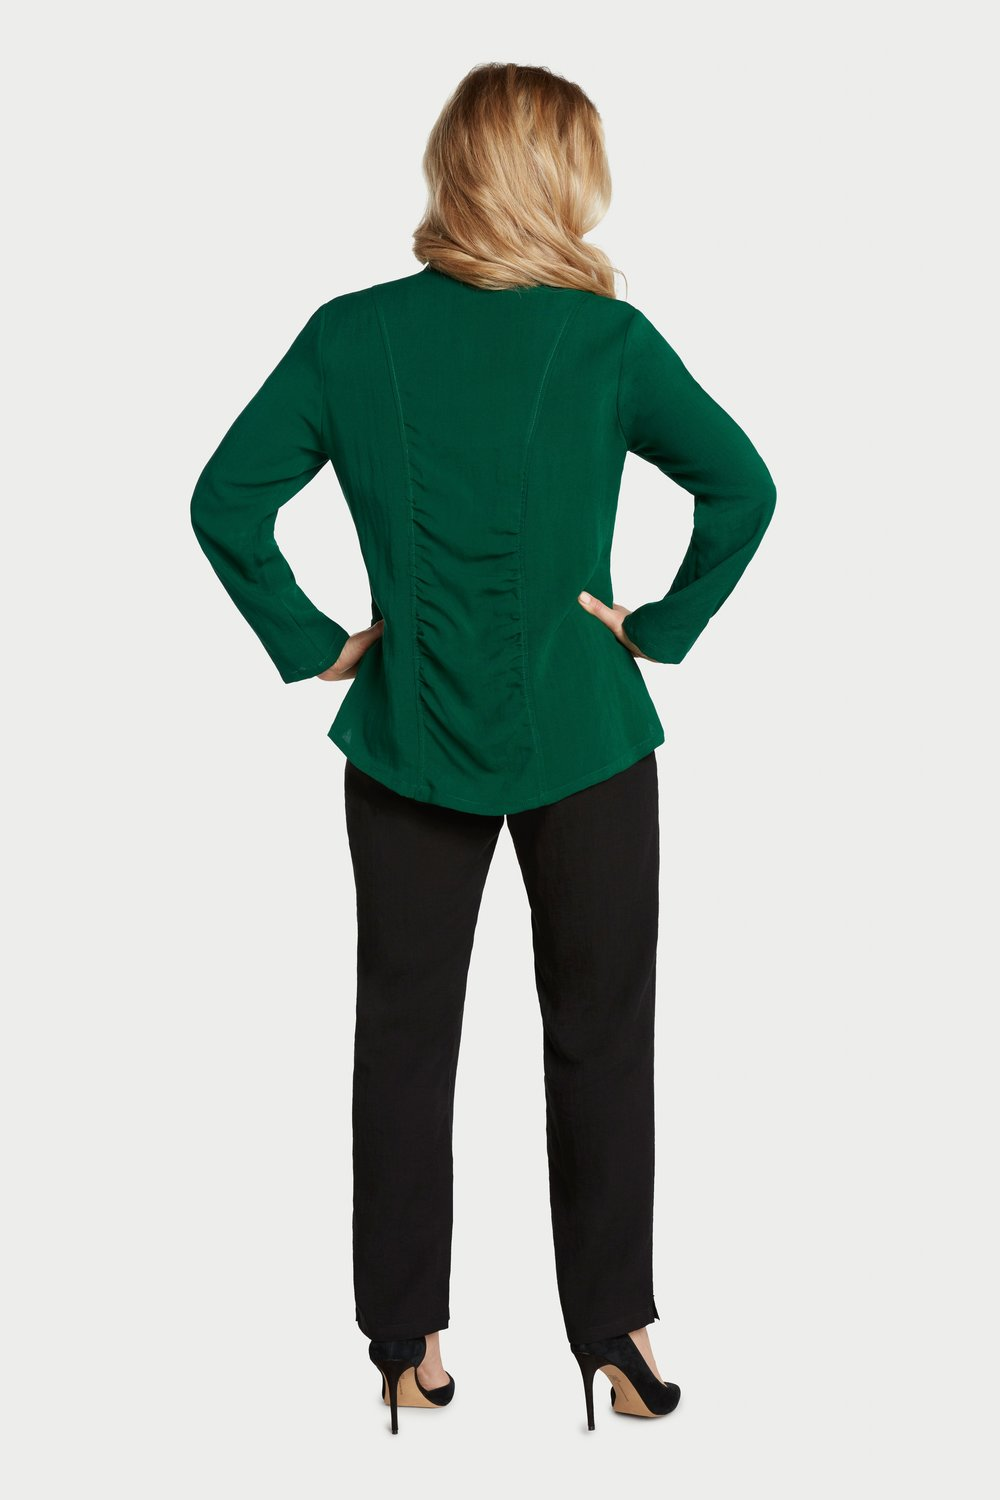 AA237 - Ruched Zip Jacket    Pine - CL4393